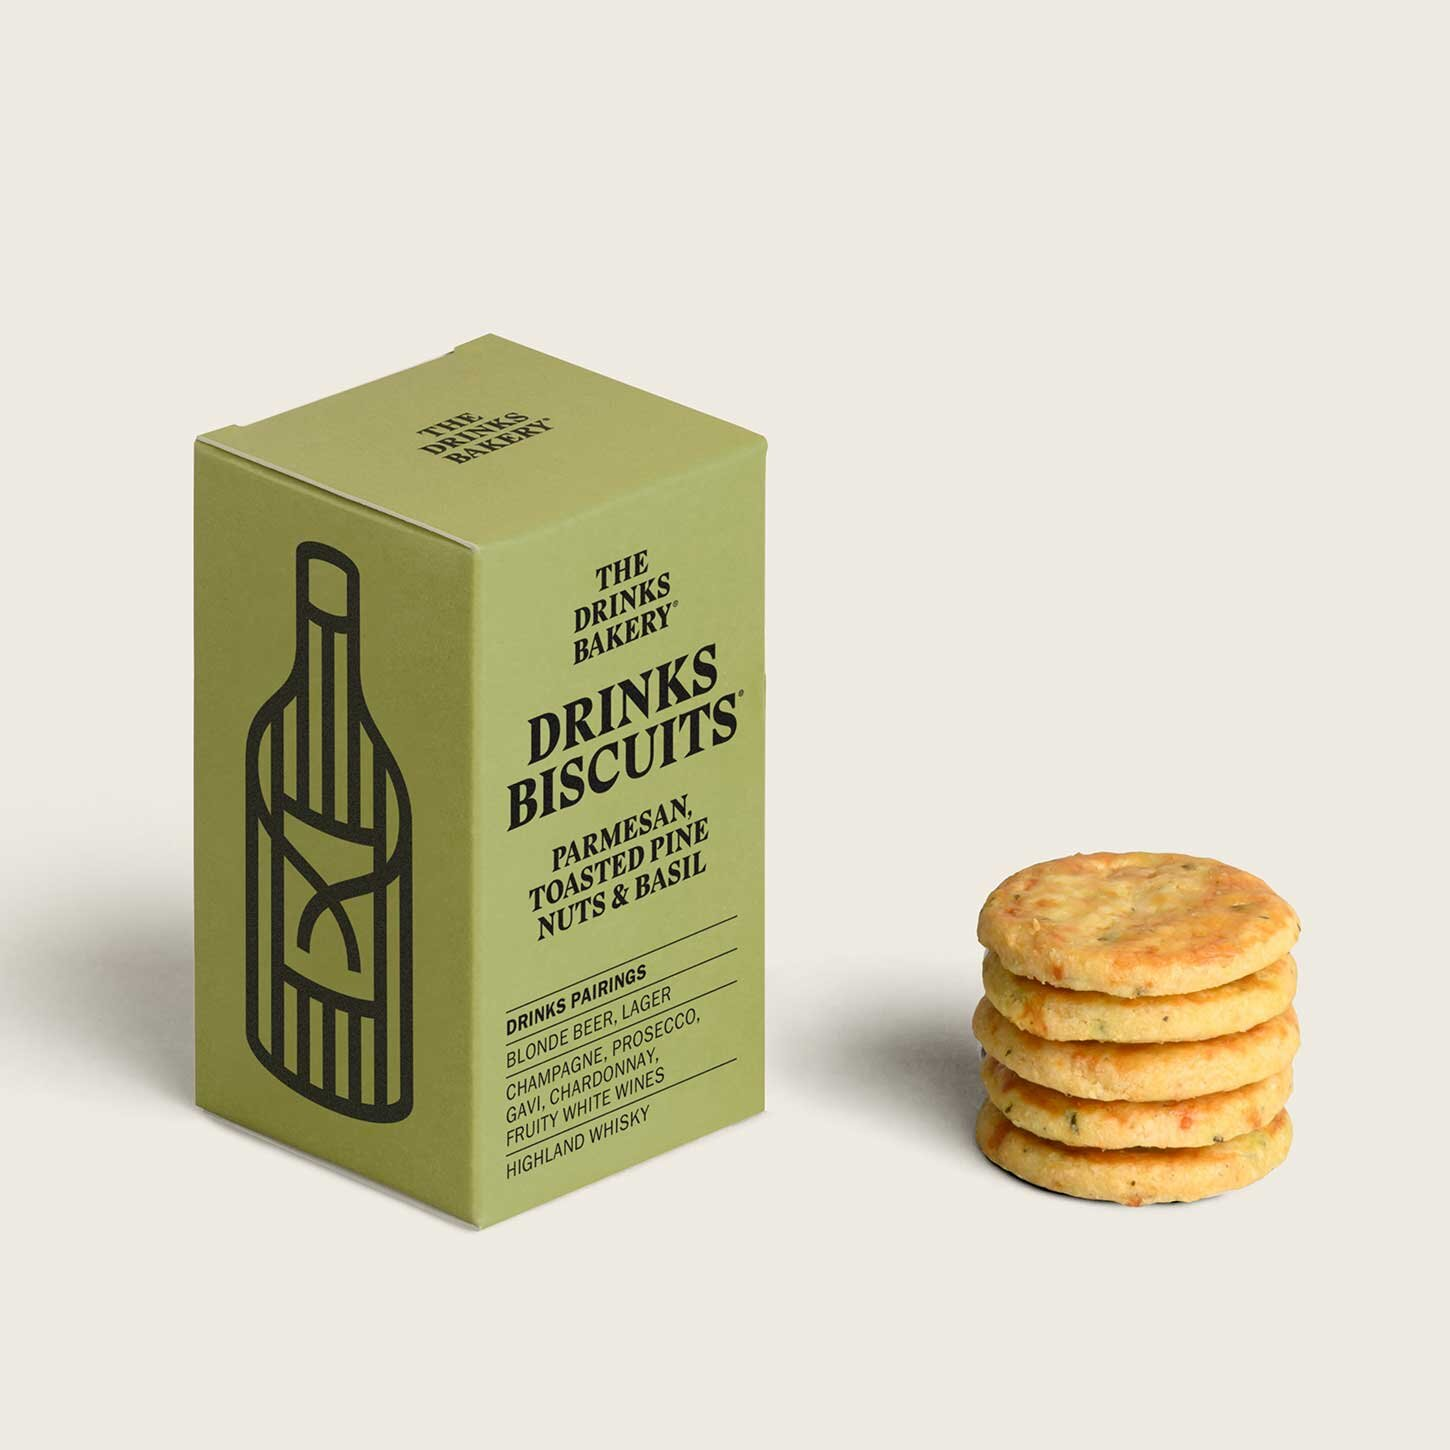 Drinks Bakery Drinks Biscuits- Parmesan Toasted Pine Nuts and Basil 36g